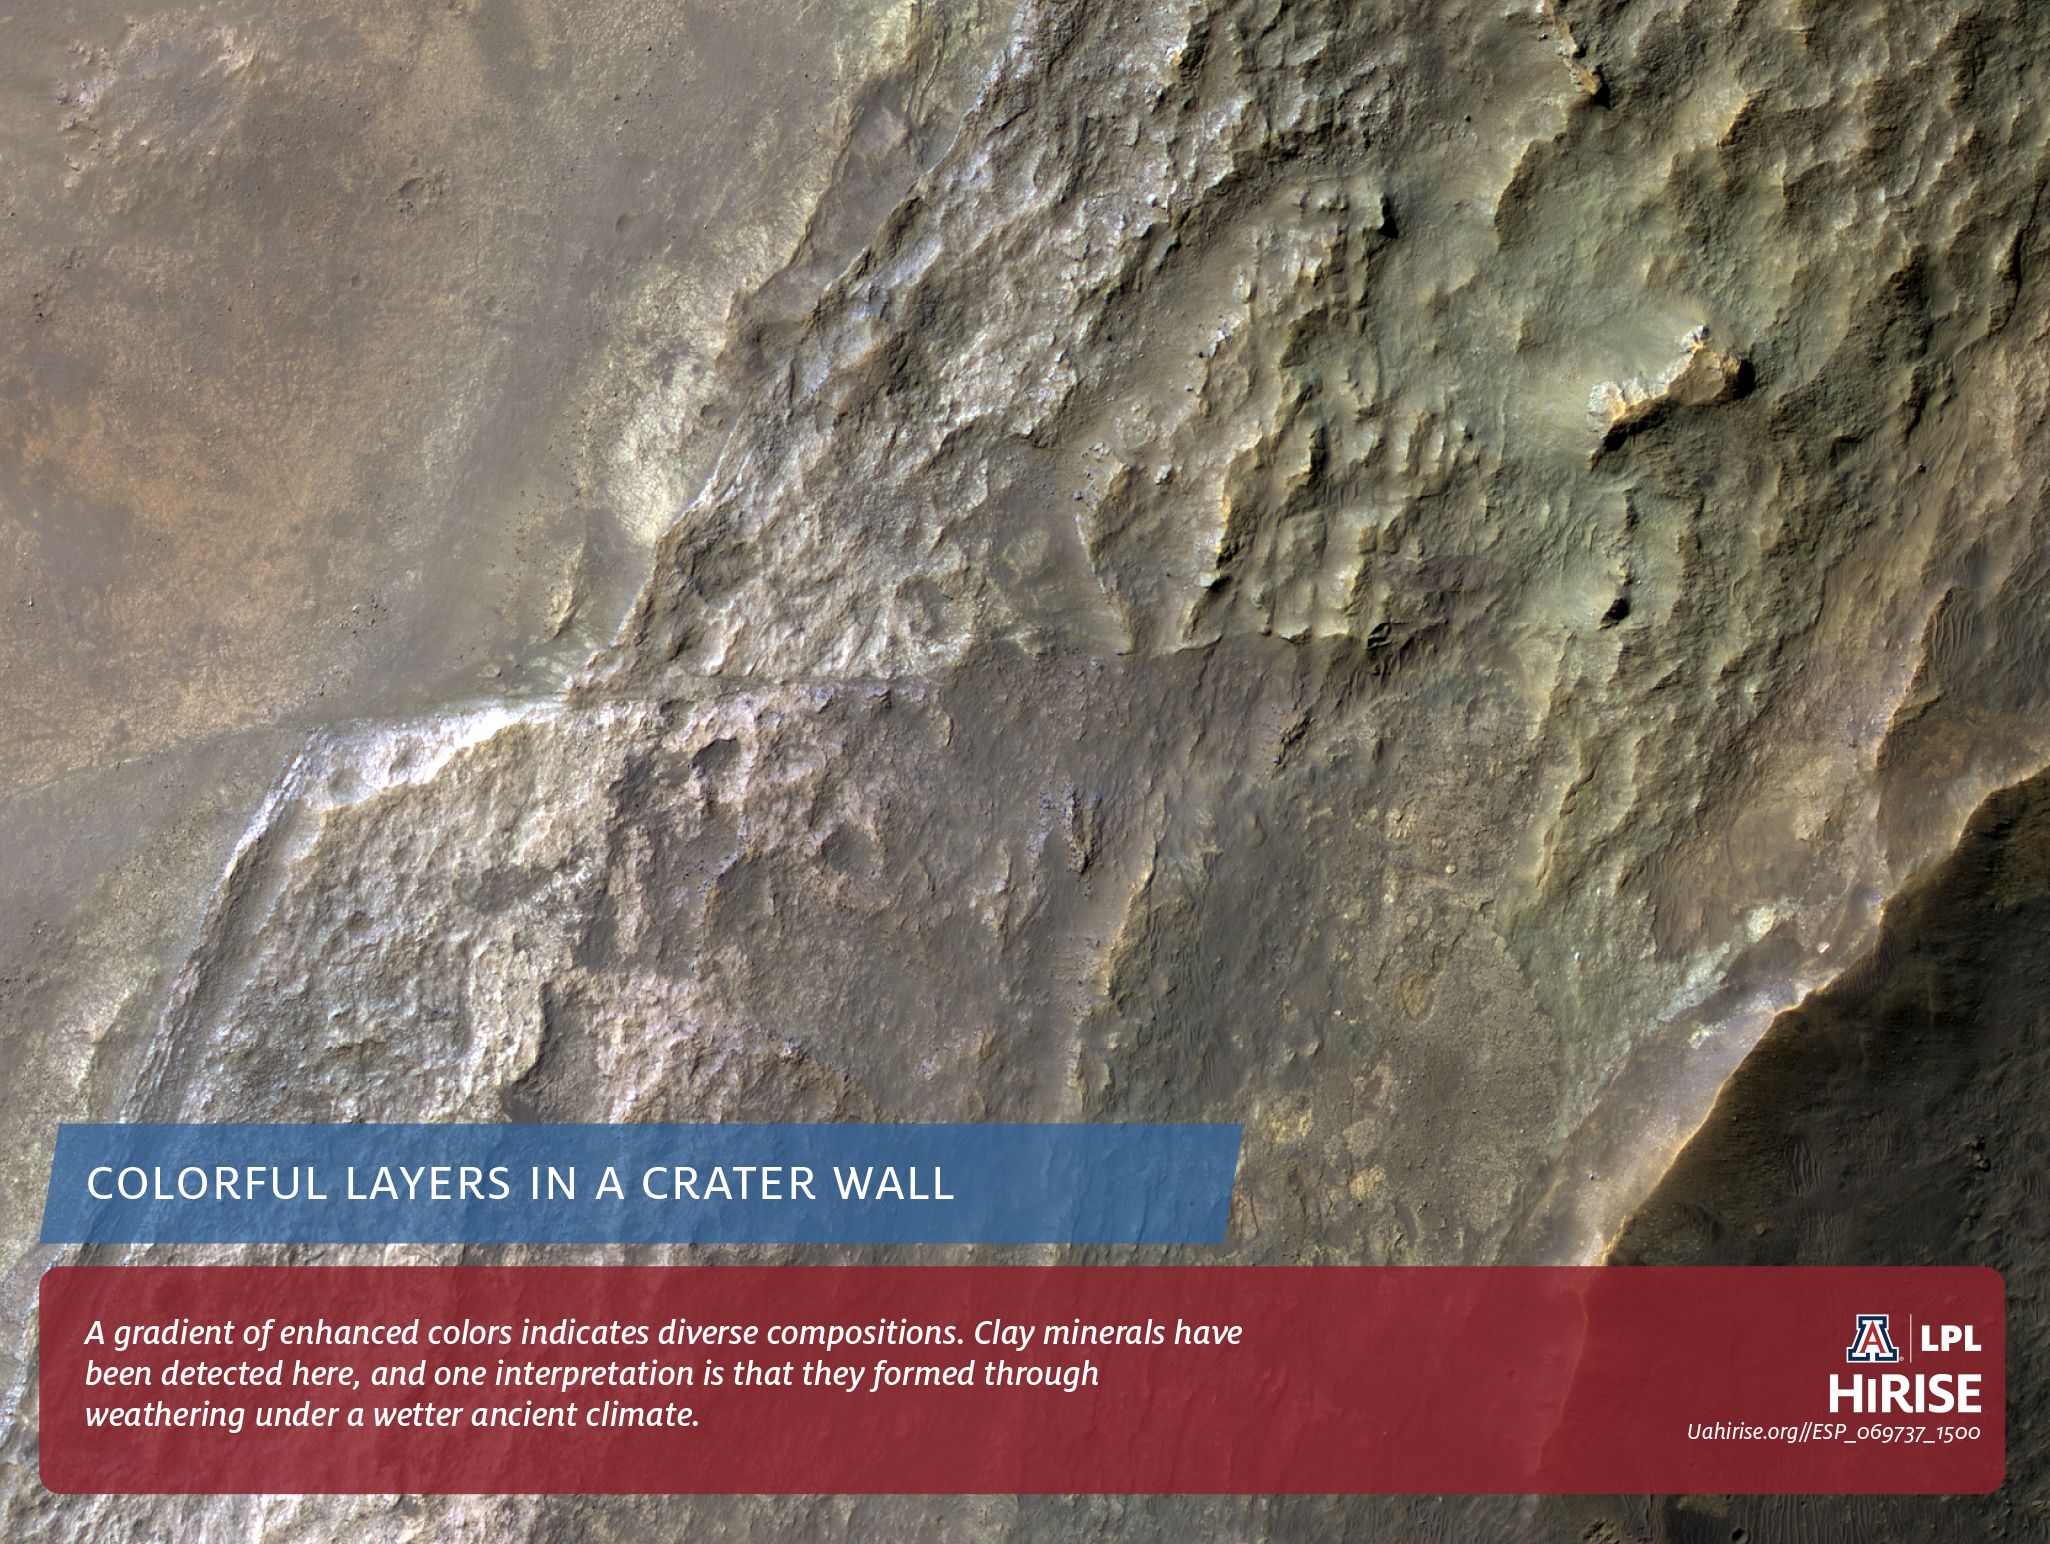 Colorful Layers in a Crater Wall